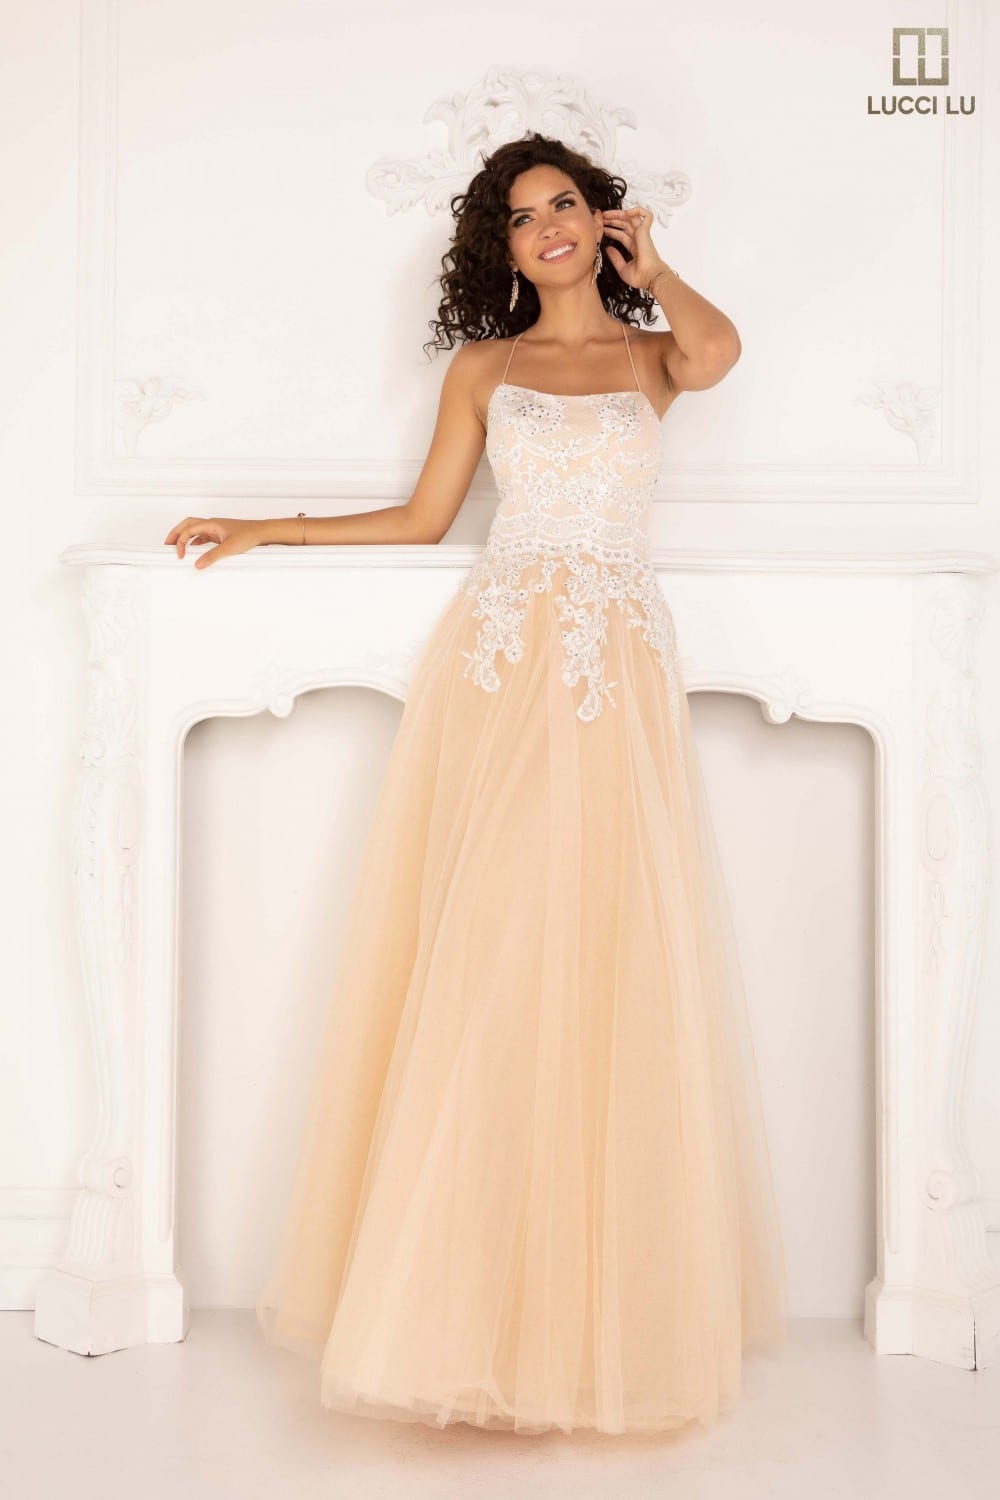 Elegant ballgown with lace floral pattern, a lace-up back, and tulle.Elegant ballgown with lace floral pattern, a lace-up back, and tulle.